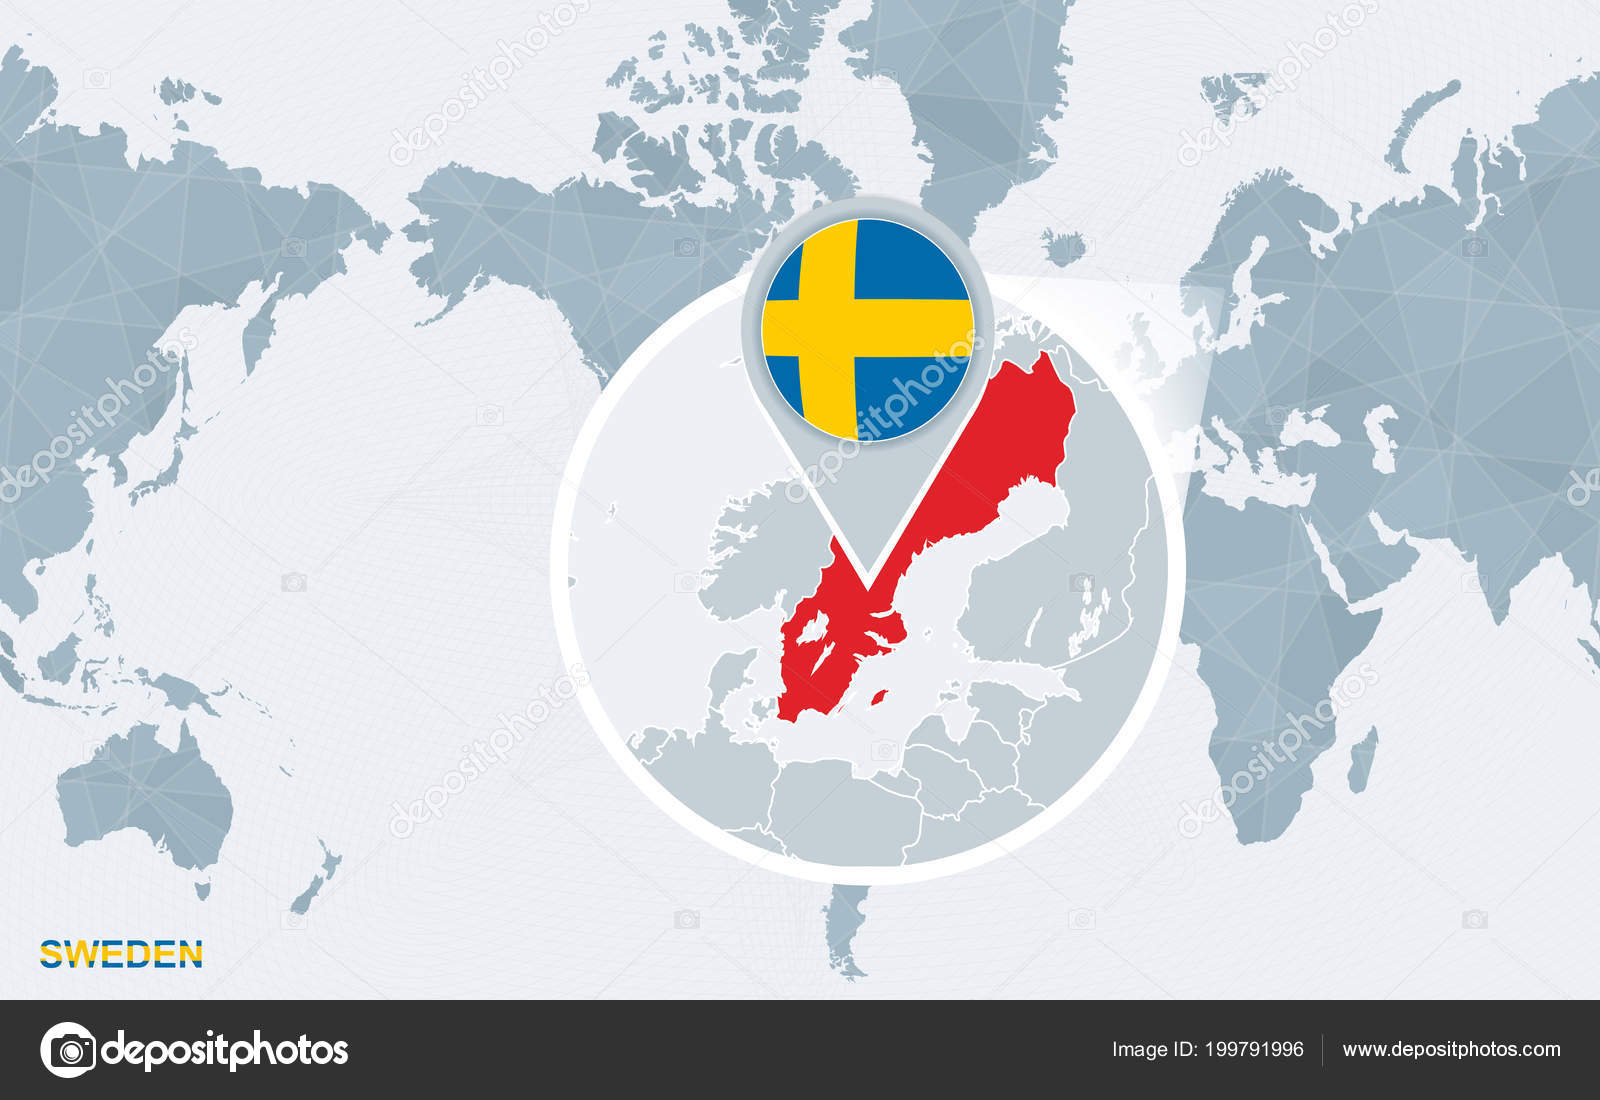 World Map Centered America Magnified Sweden Blue Flag Map ...